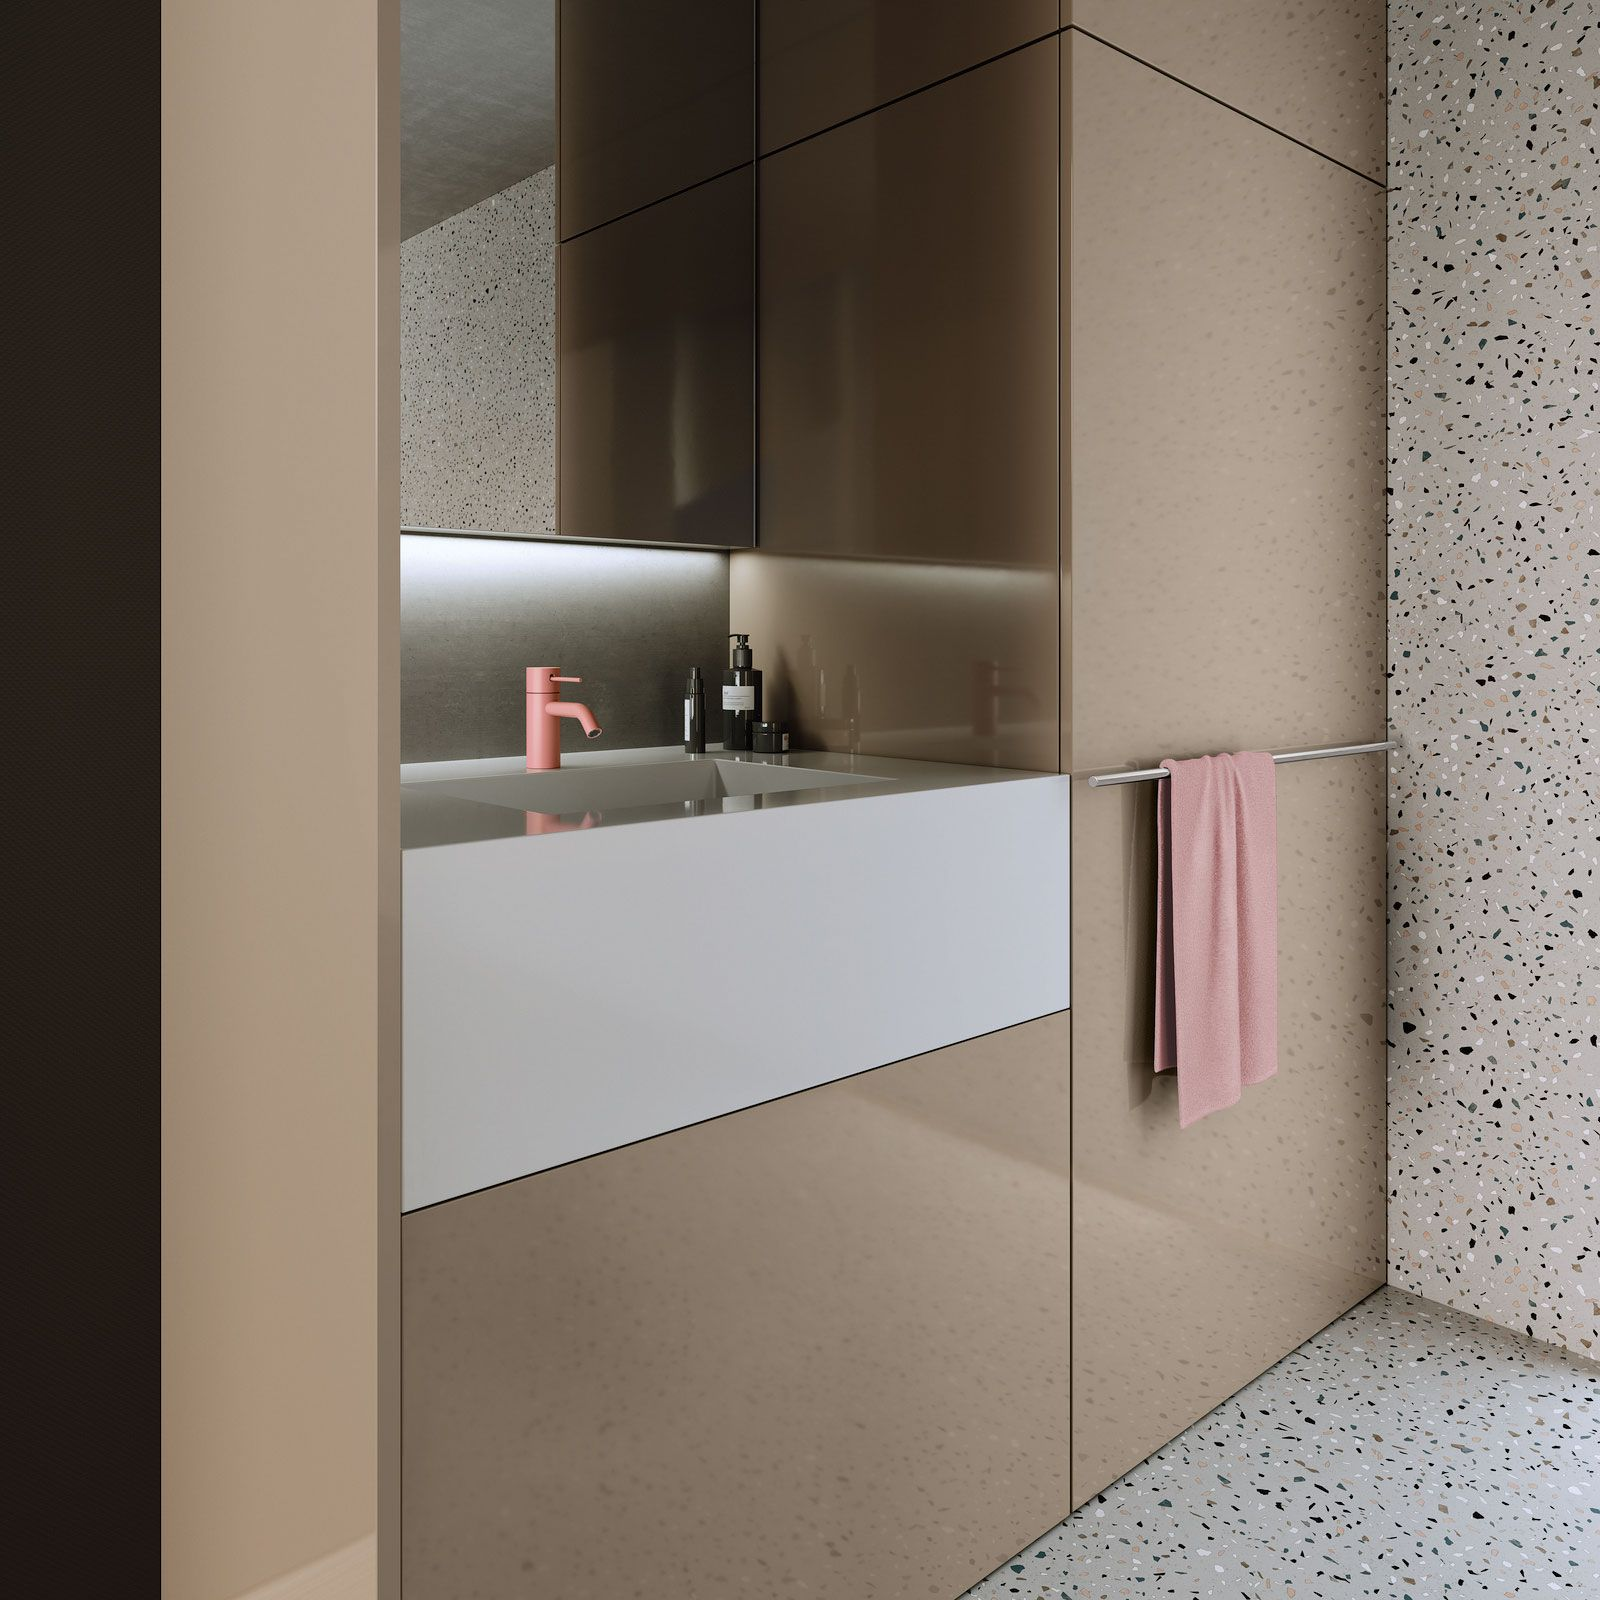 Nordic Bathroomdesign: More Options For Individual Interior Design With Carefully